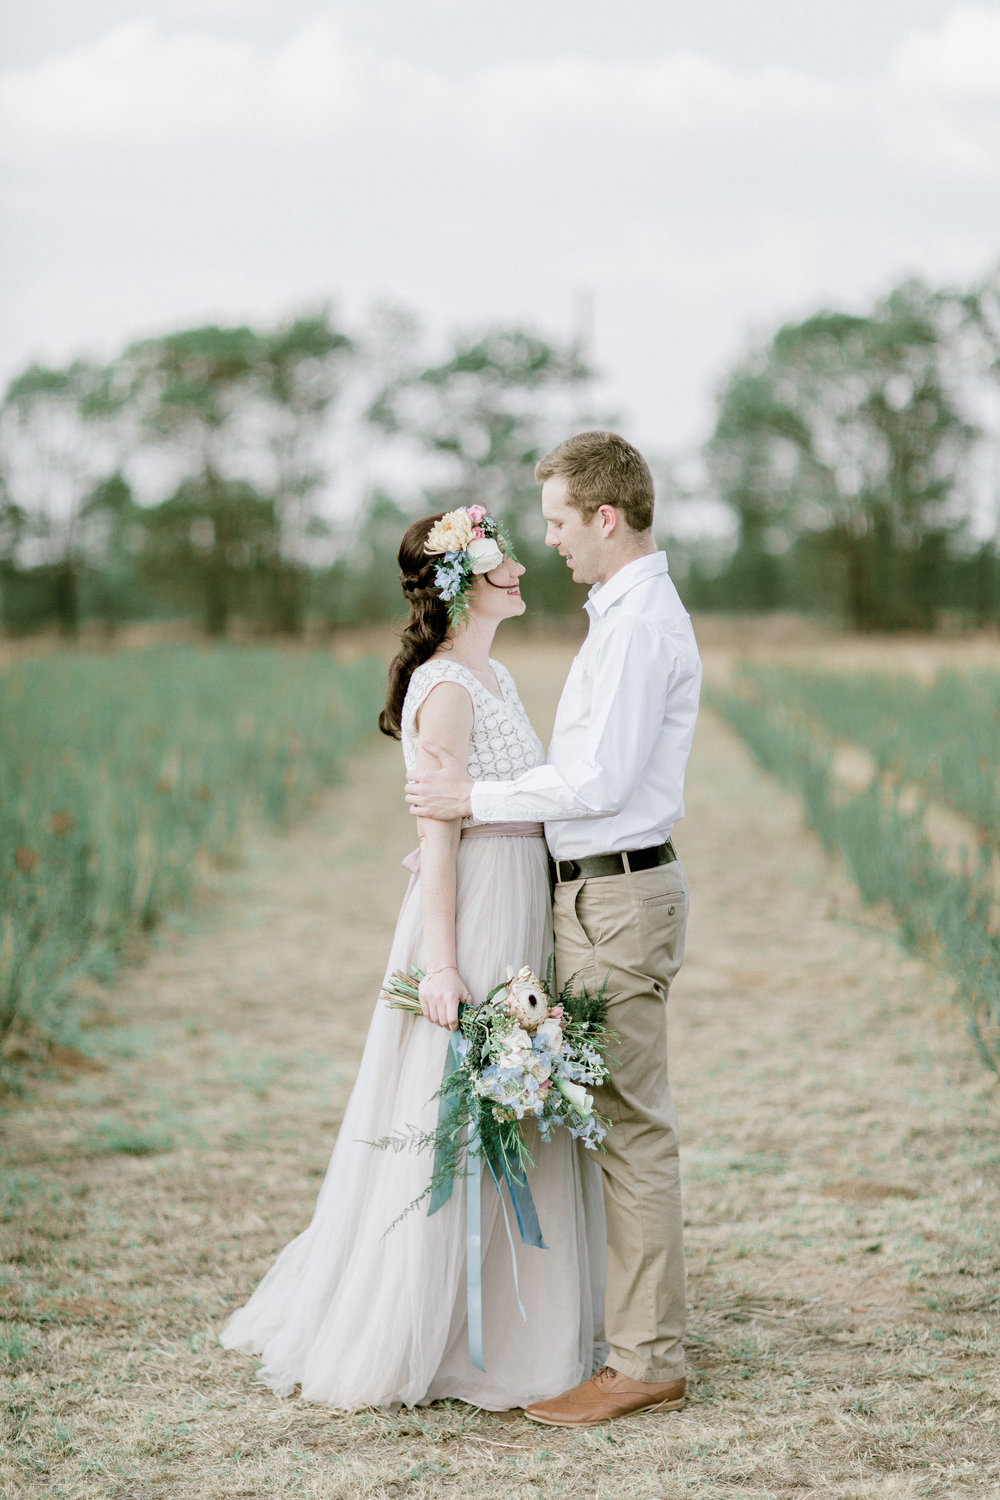 South africa wedding photographer clareece smit photography11.jpg